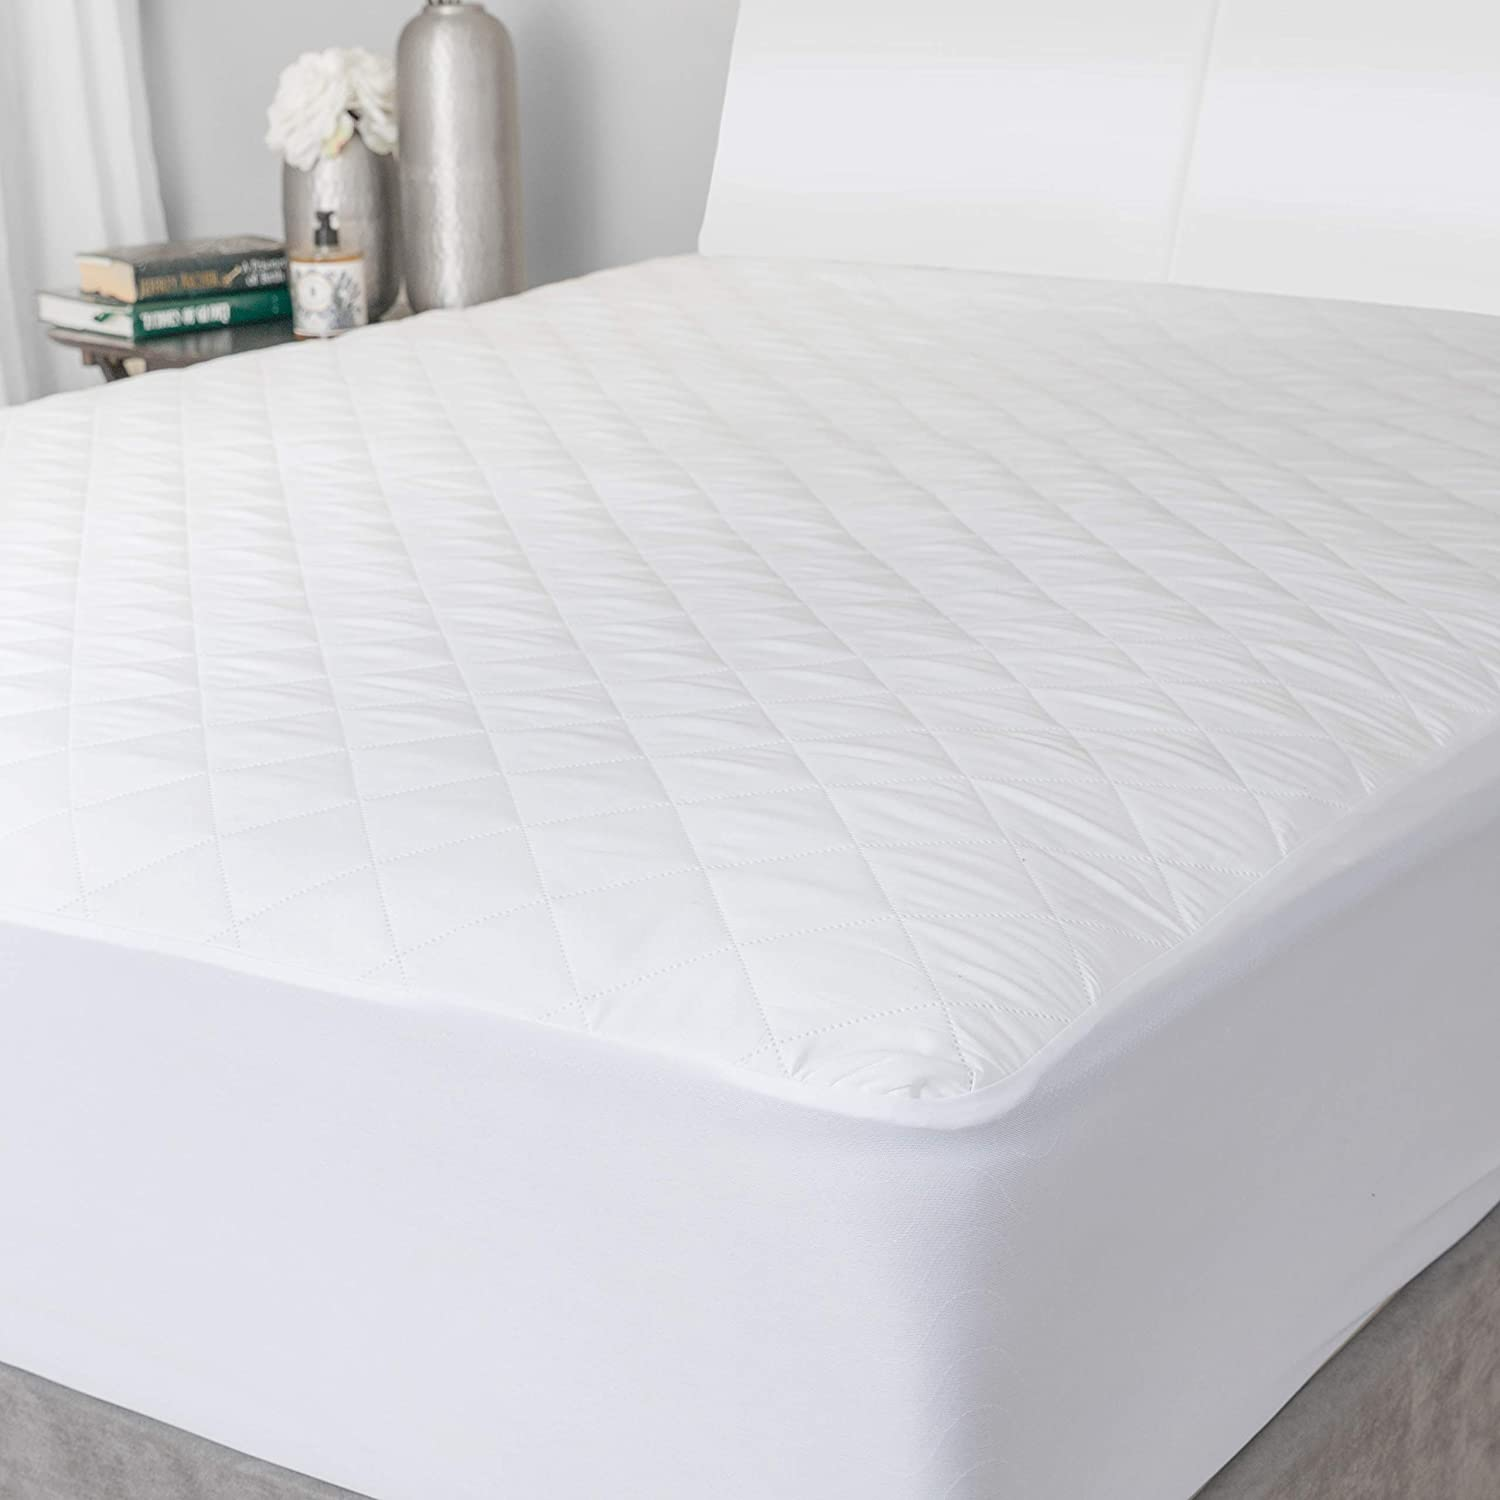 Quilted Mattress Pad - The Quilted Fabric is Comfortable and Thick Enough to Get a Restful Night Sleep. The Plush Mattress Topper Will Also Help Protect Your Mattress from Stains. (Twin)